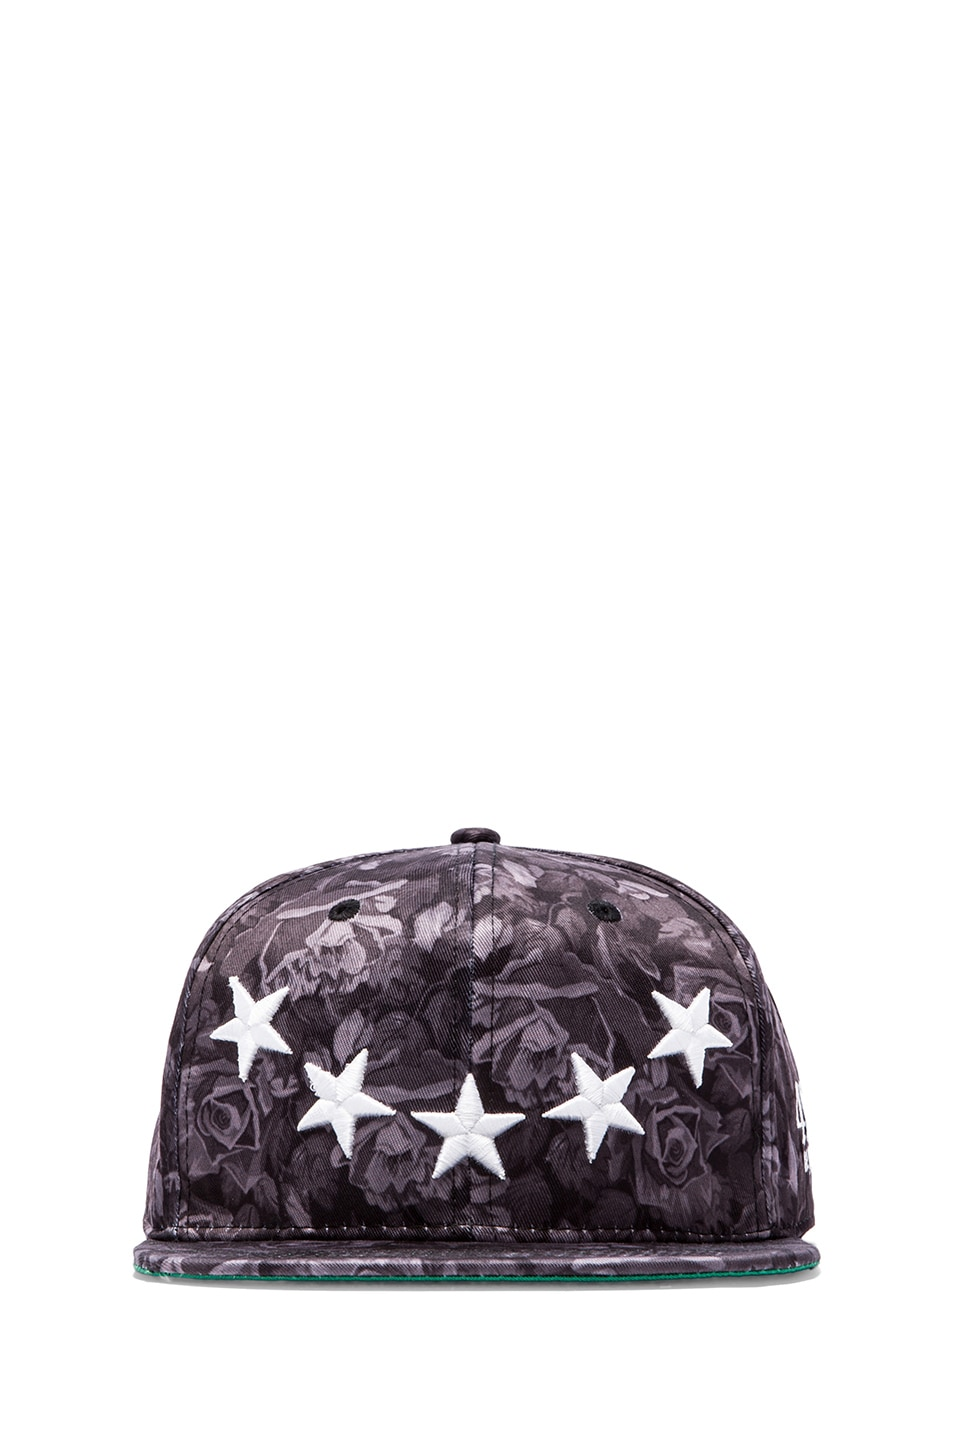 40 OZ NY Roses and Stars Hat in Black